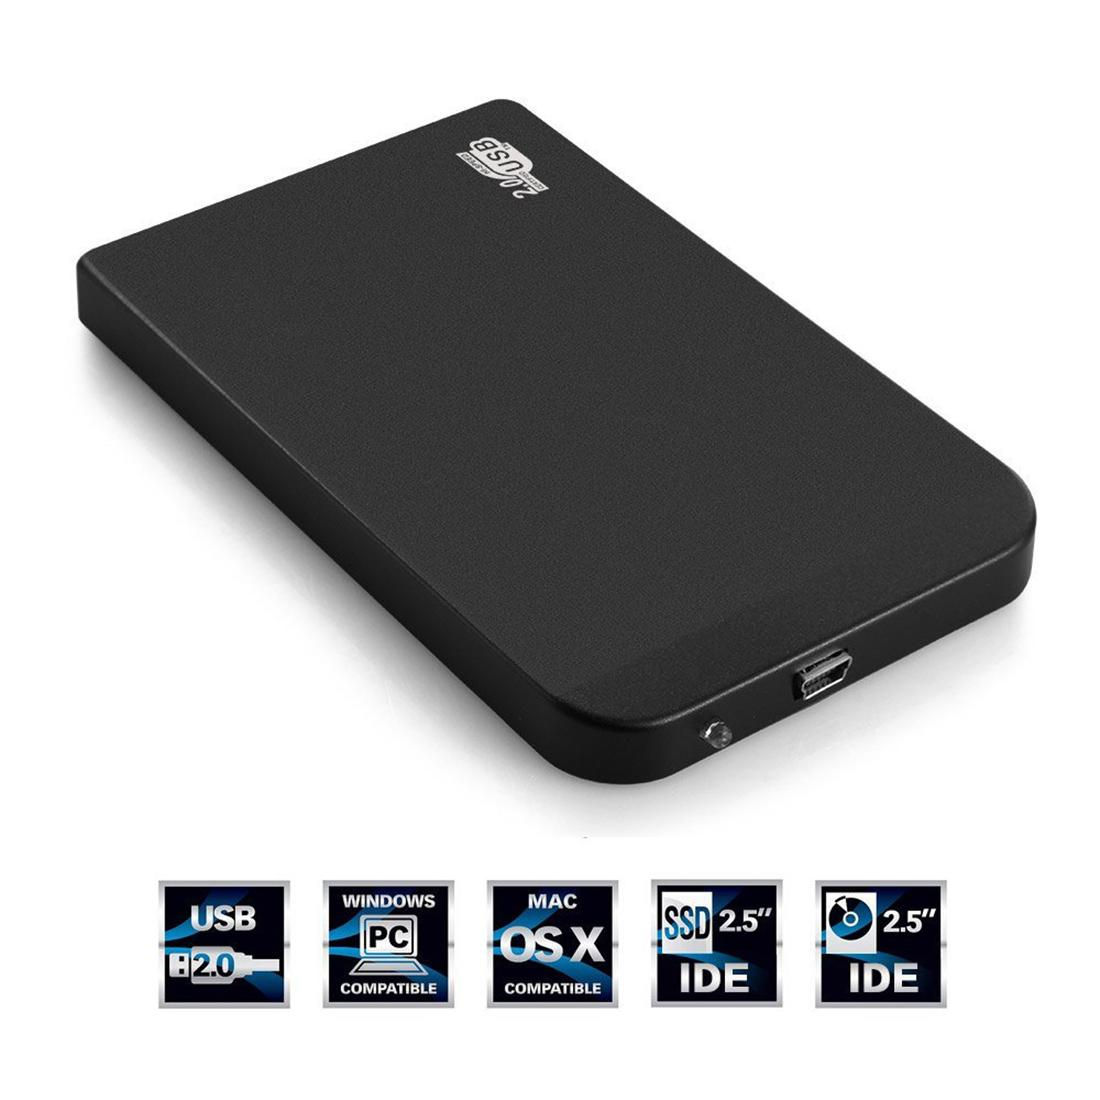 New 2.5 Inch Portable USB 2.0 IDE HDD Hard Disk Drive Enclosure External Cover Box Black(China (Mainland))